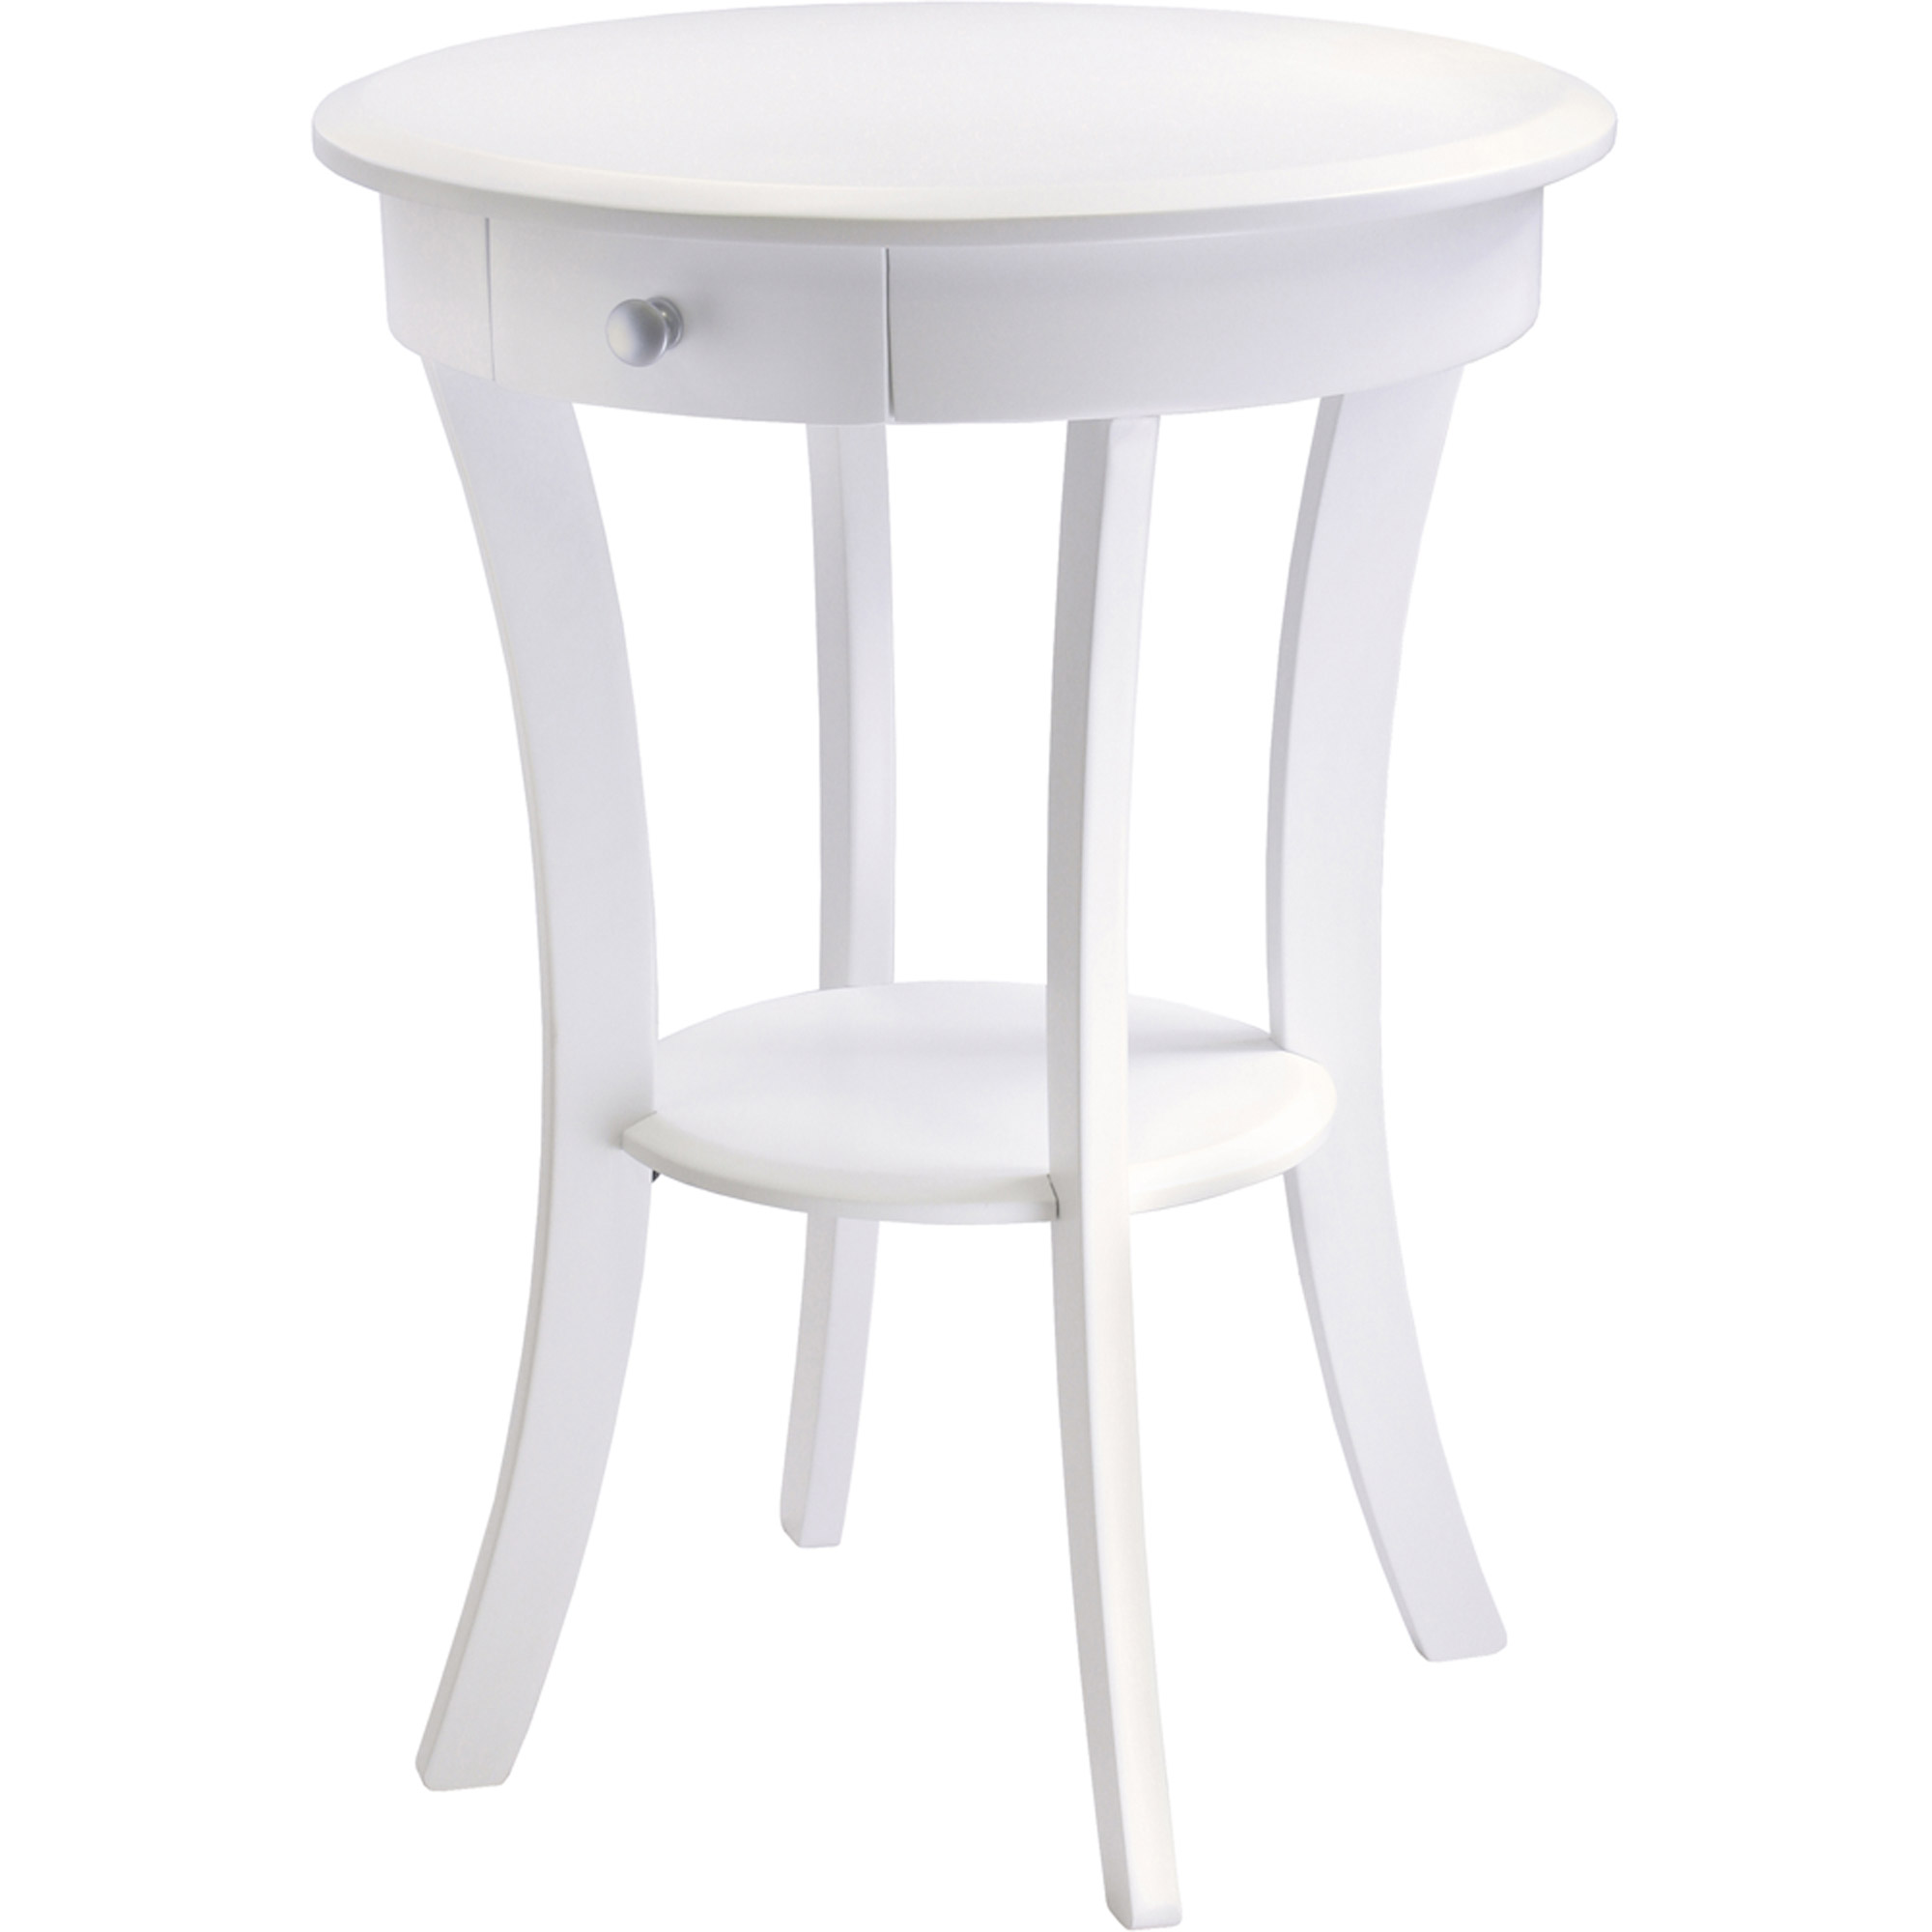 threshold accent tablecloth side table faux for decorating pedestal unfinished wooden white ideas round covers cover wood small full size bar legs decorative storage cabinets